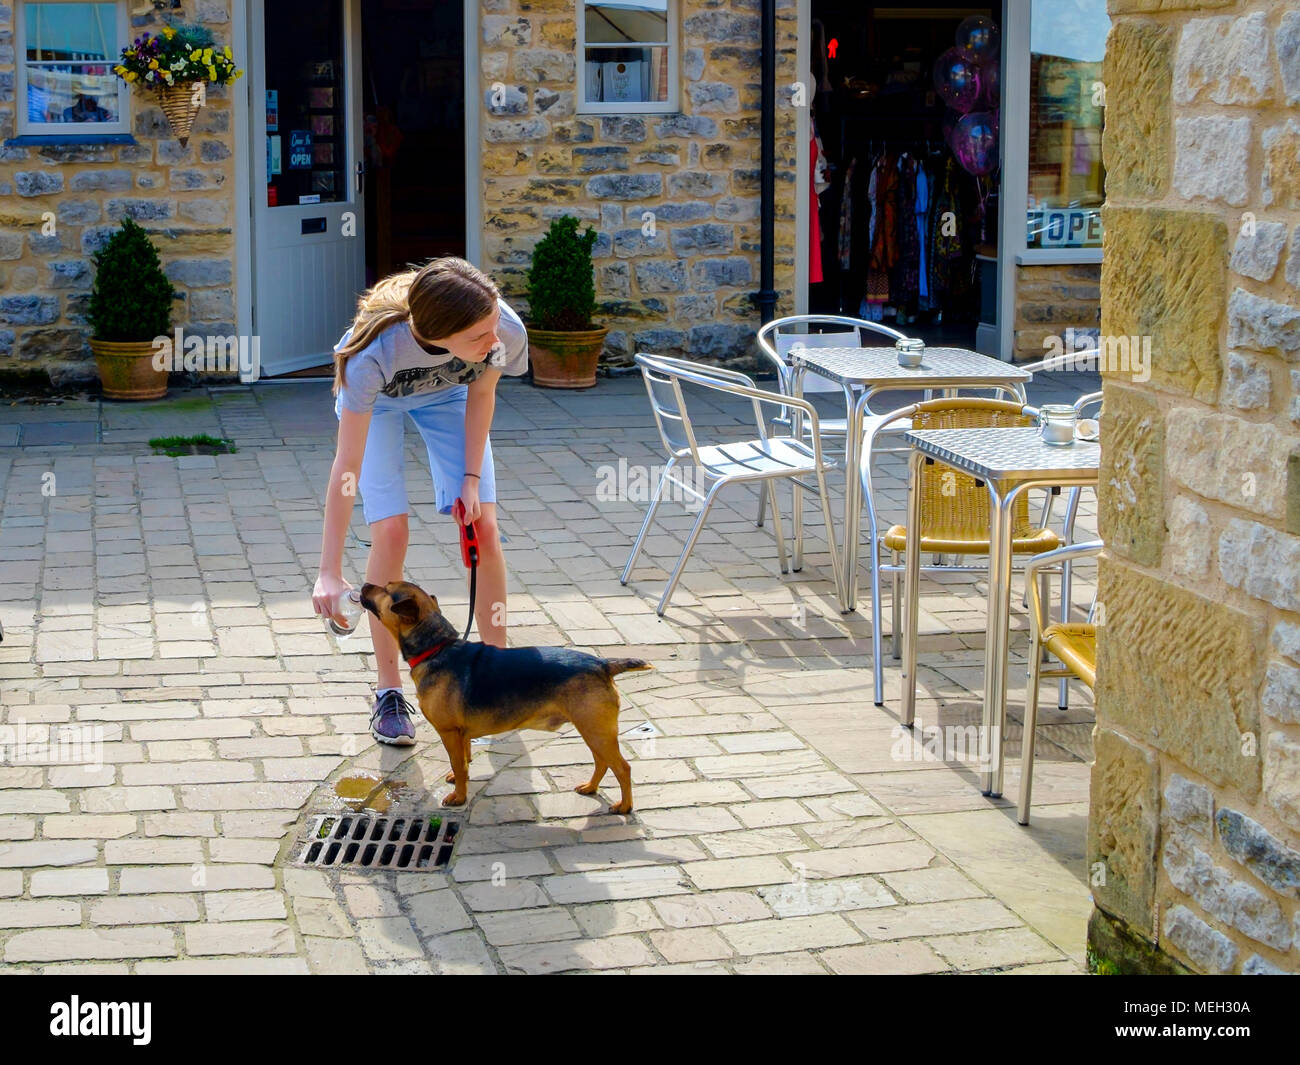 A young woman giving a pet dog a drink of water from a plastic bottle on a hot day in Yorkshire - Stock Image